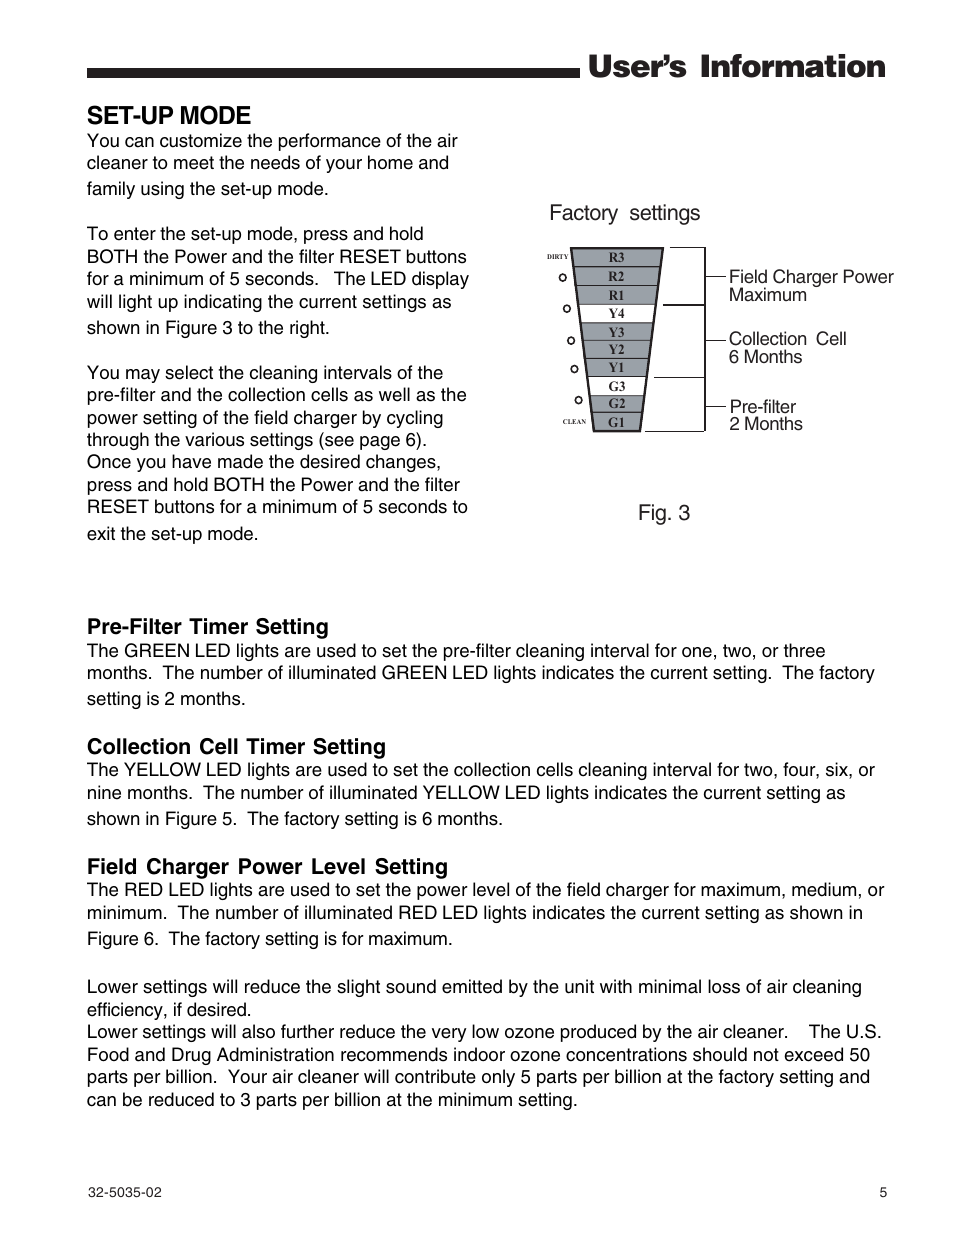 User's information, Set-up mode, Factory settings | Trane CleanEffects Air  Filtration System User Manual | Page 5 / 8